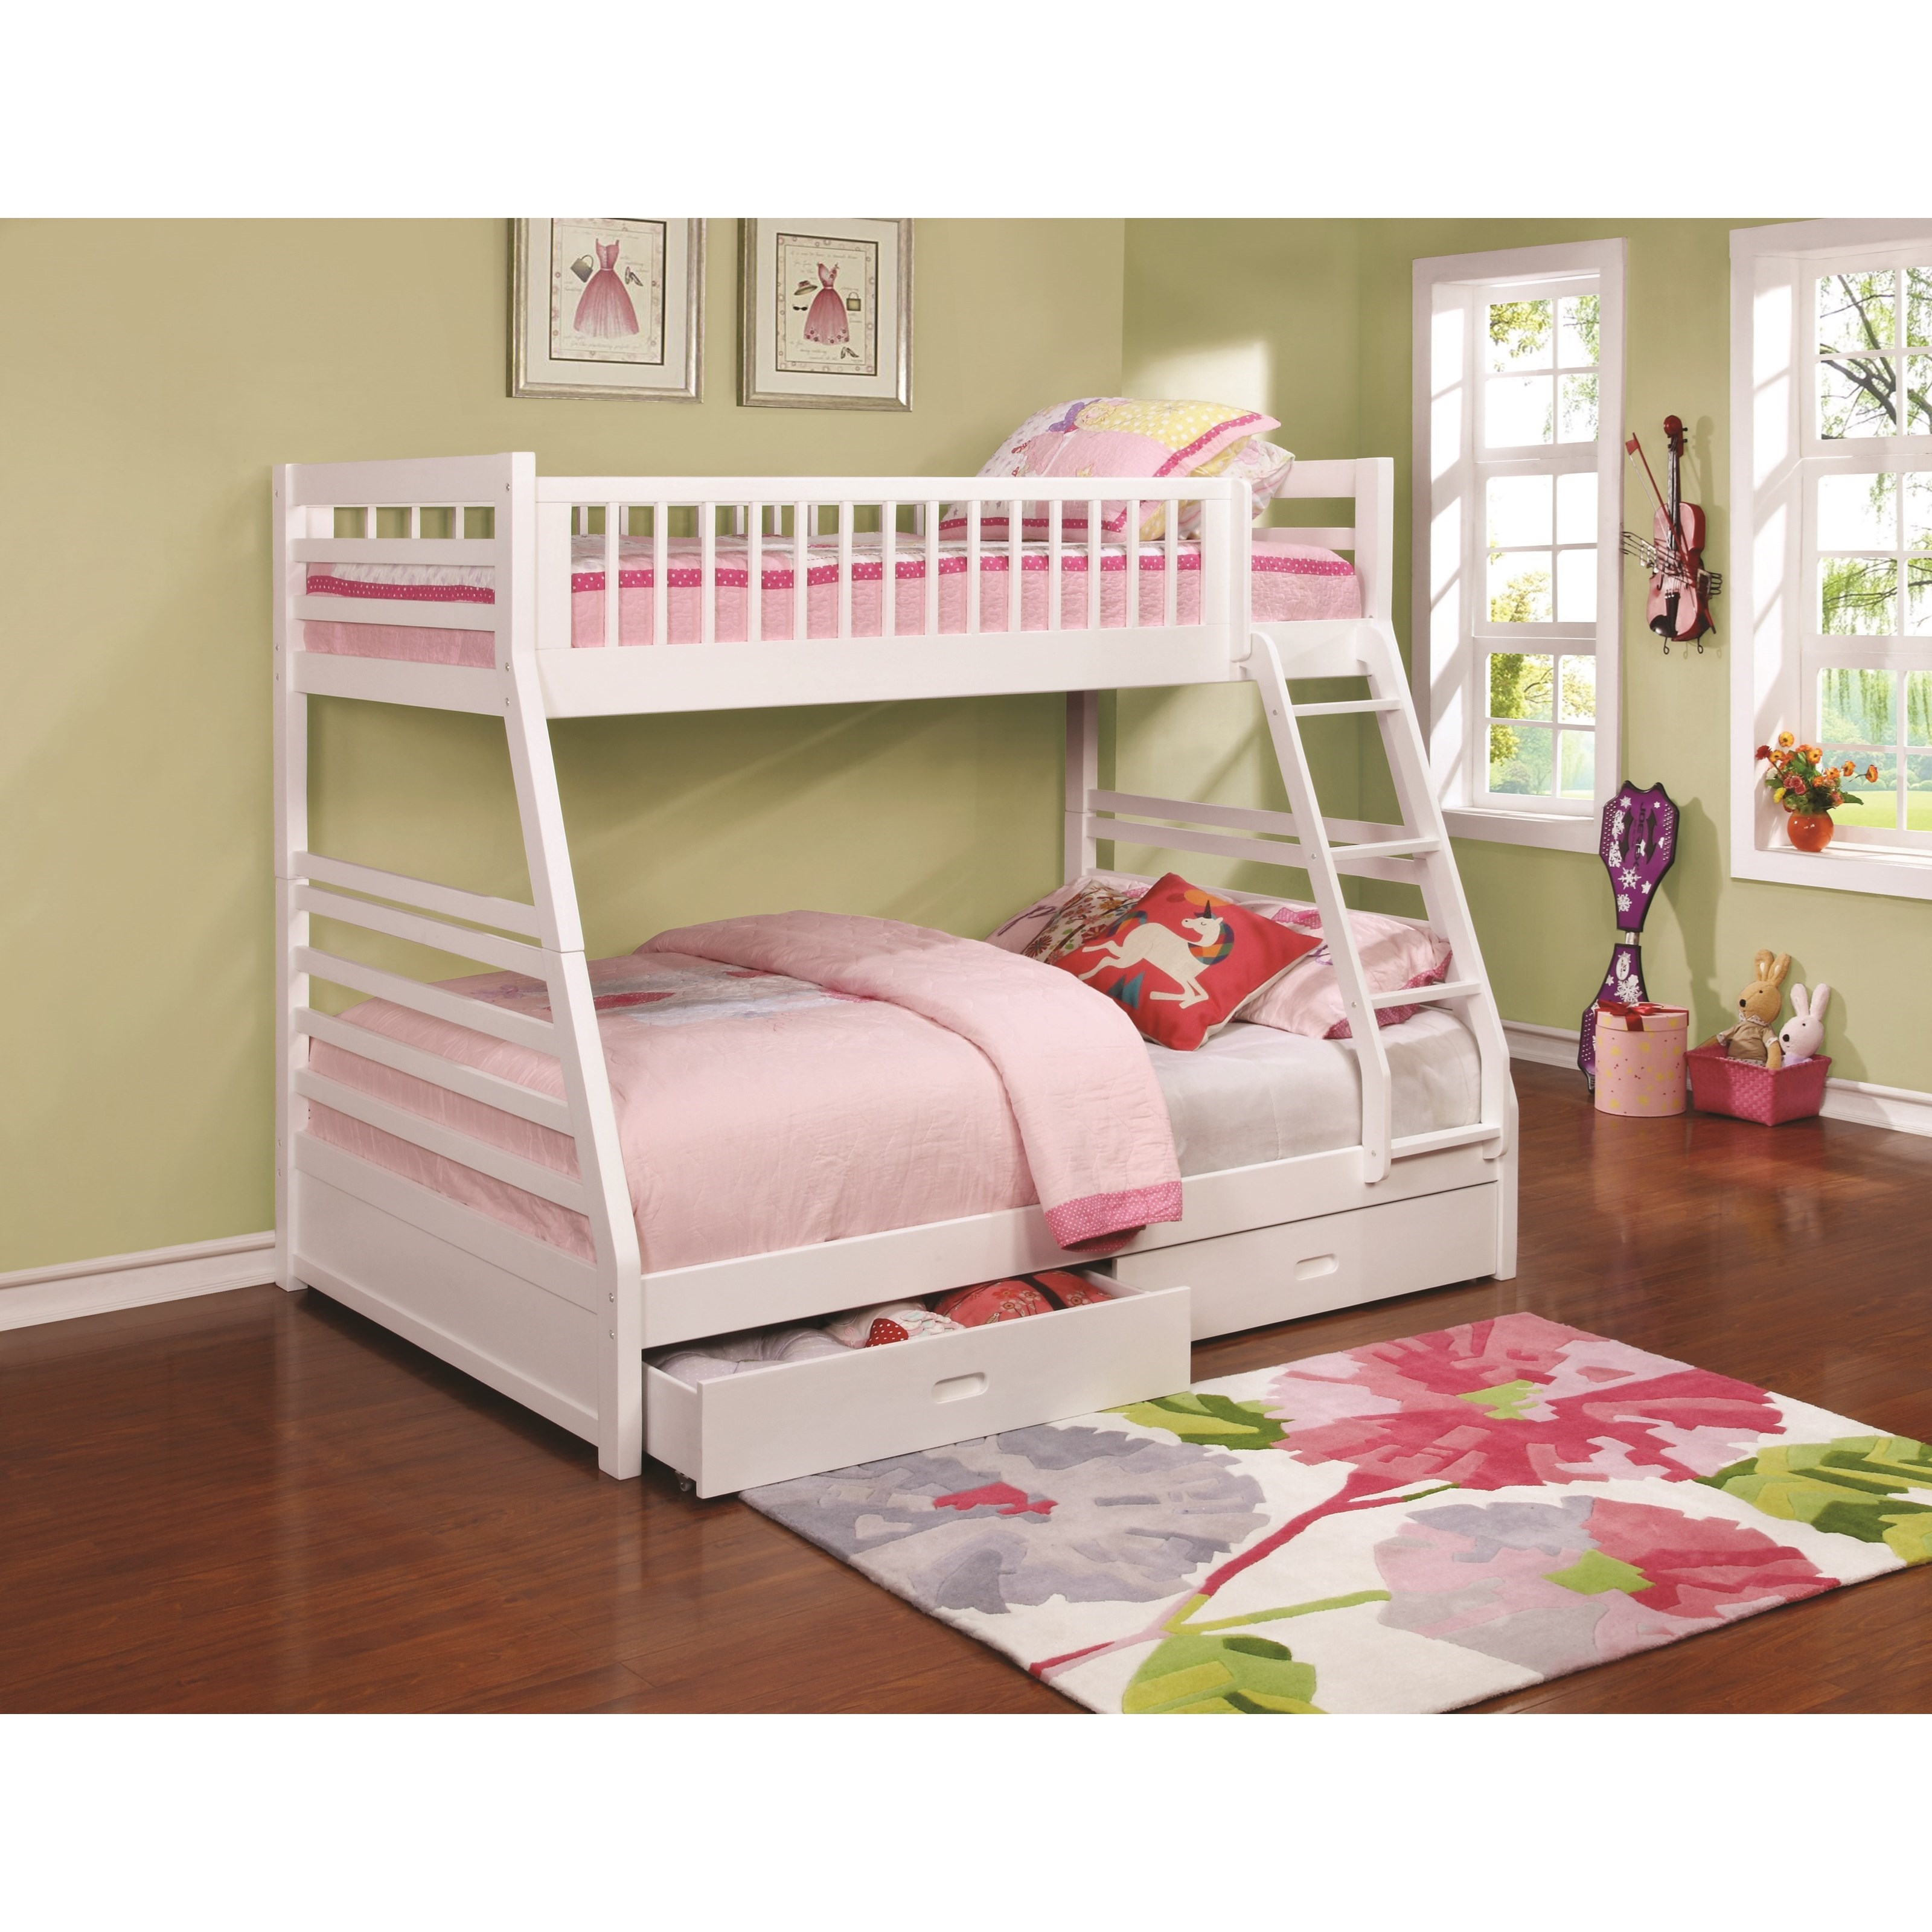 Bunks Twin Over Full Bunk Bed With 2 Drawers And Attached